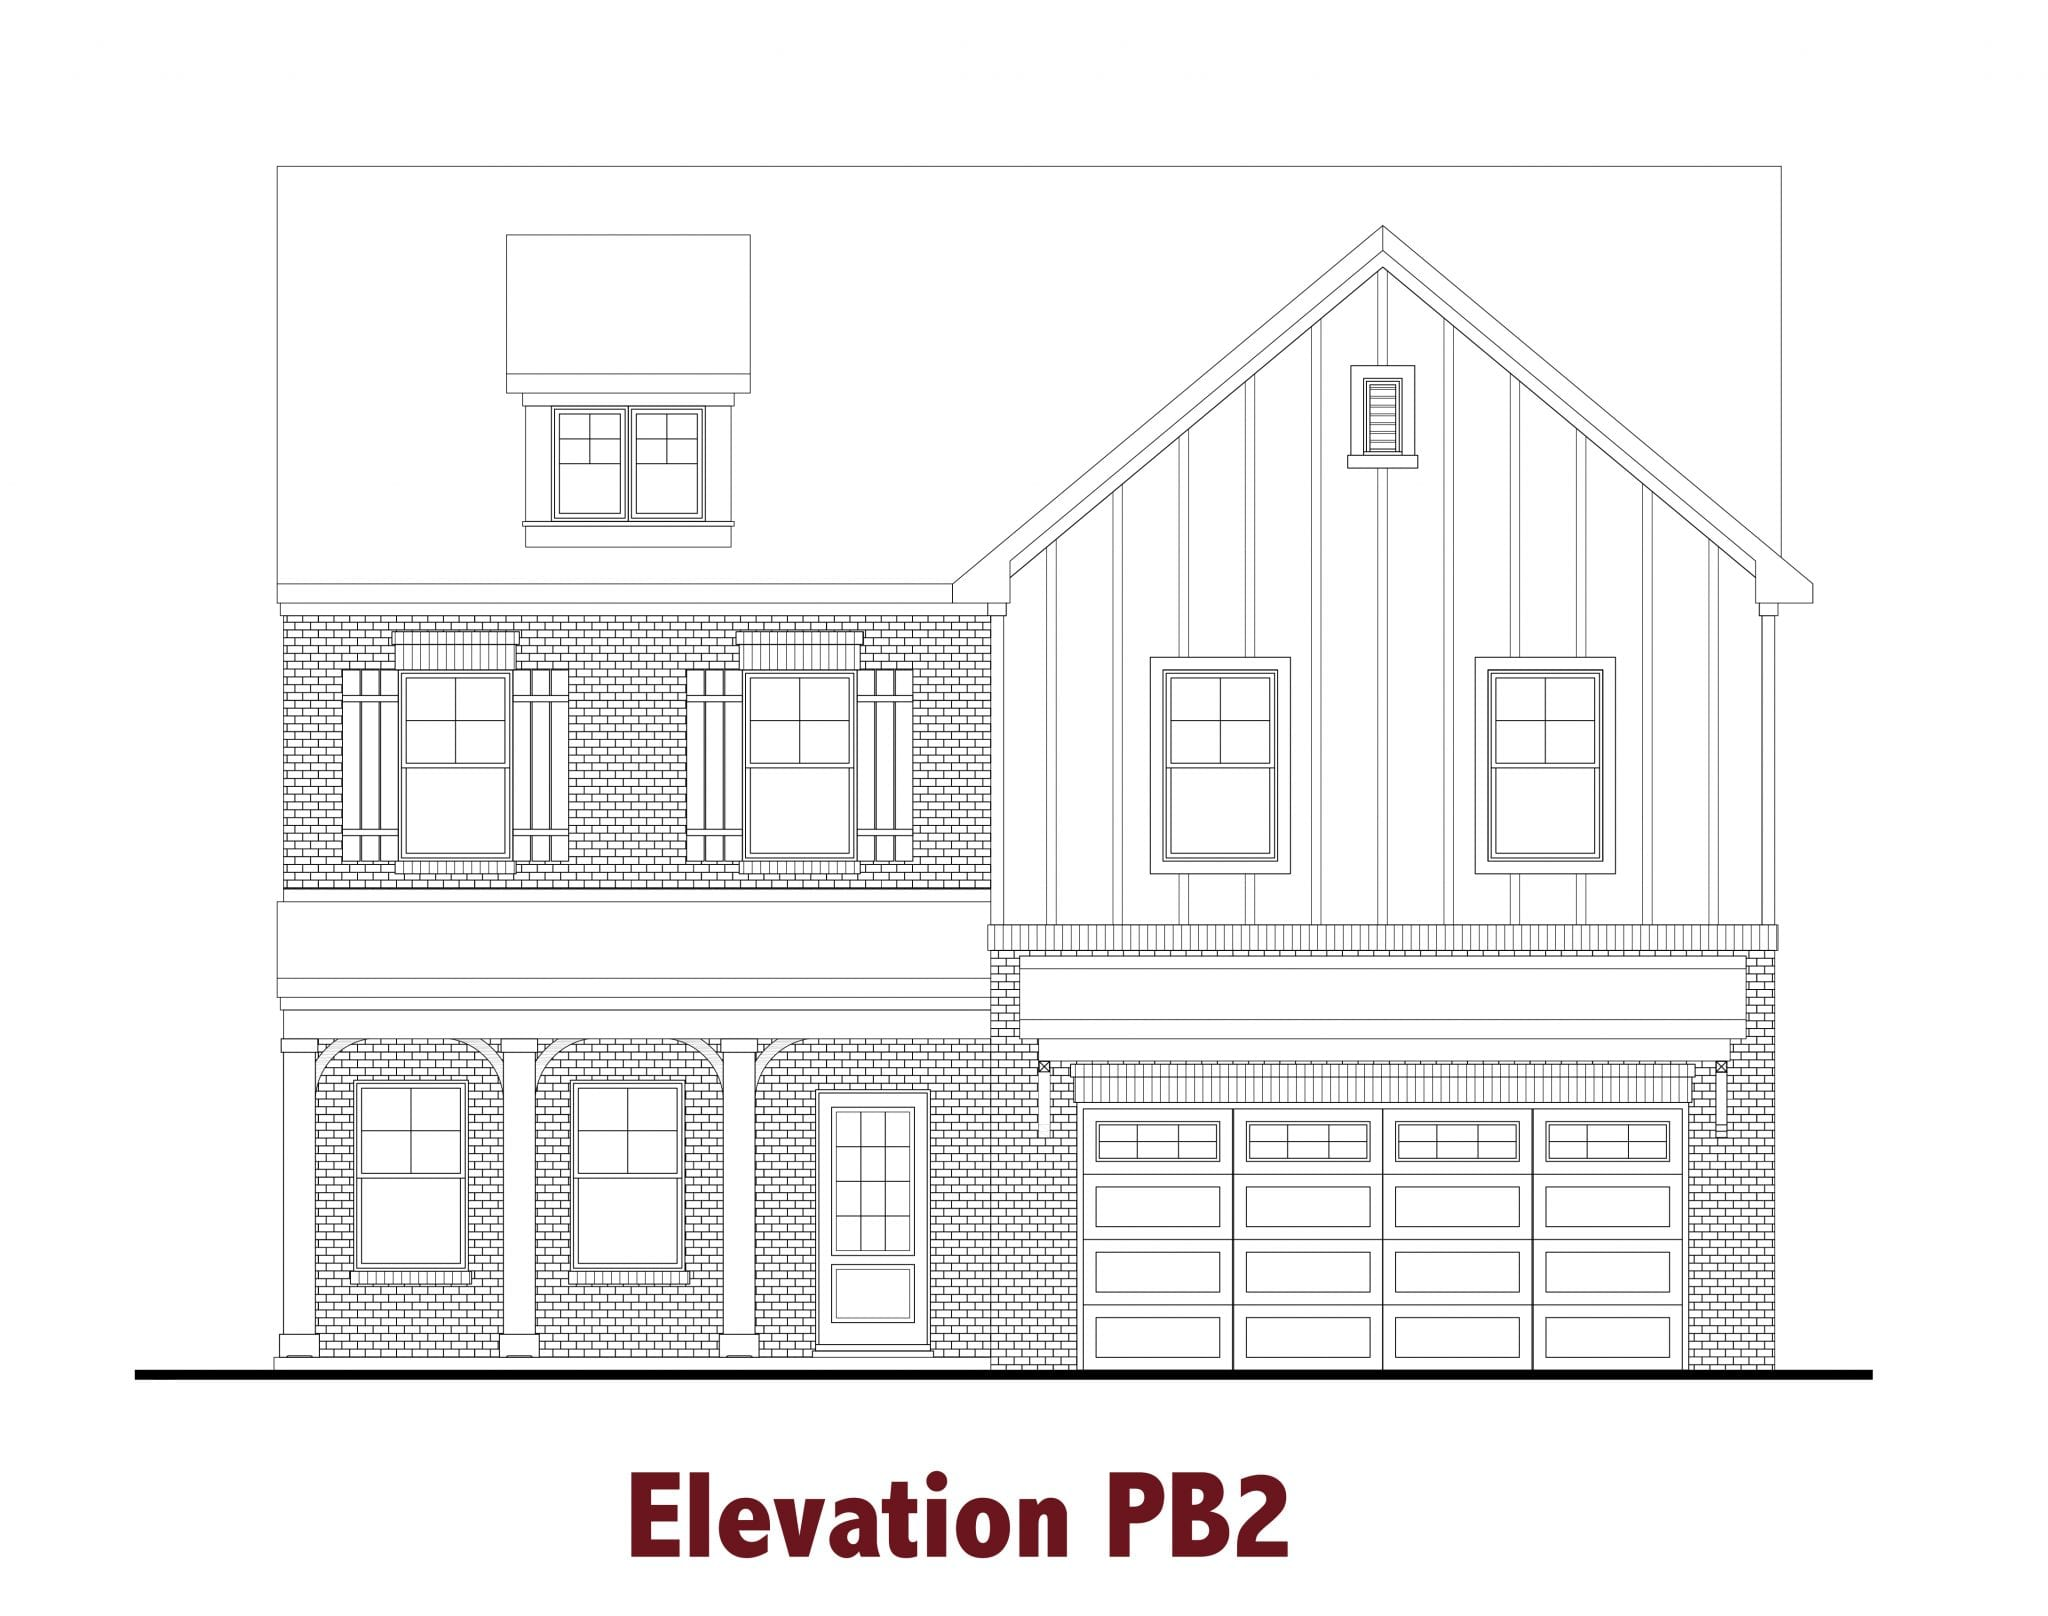 Colburn elevations Image